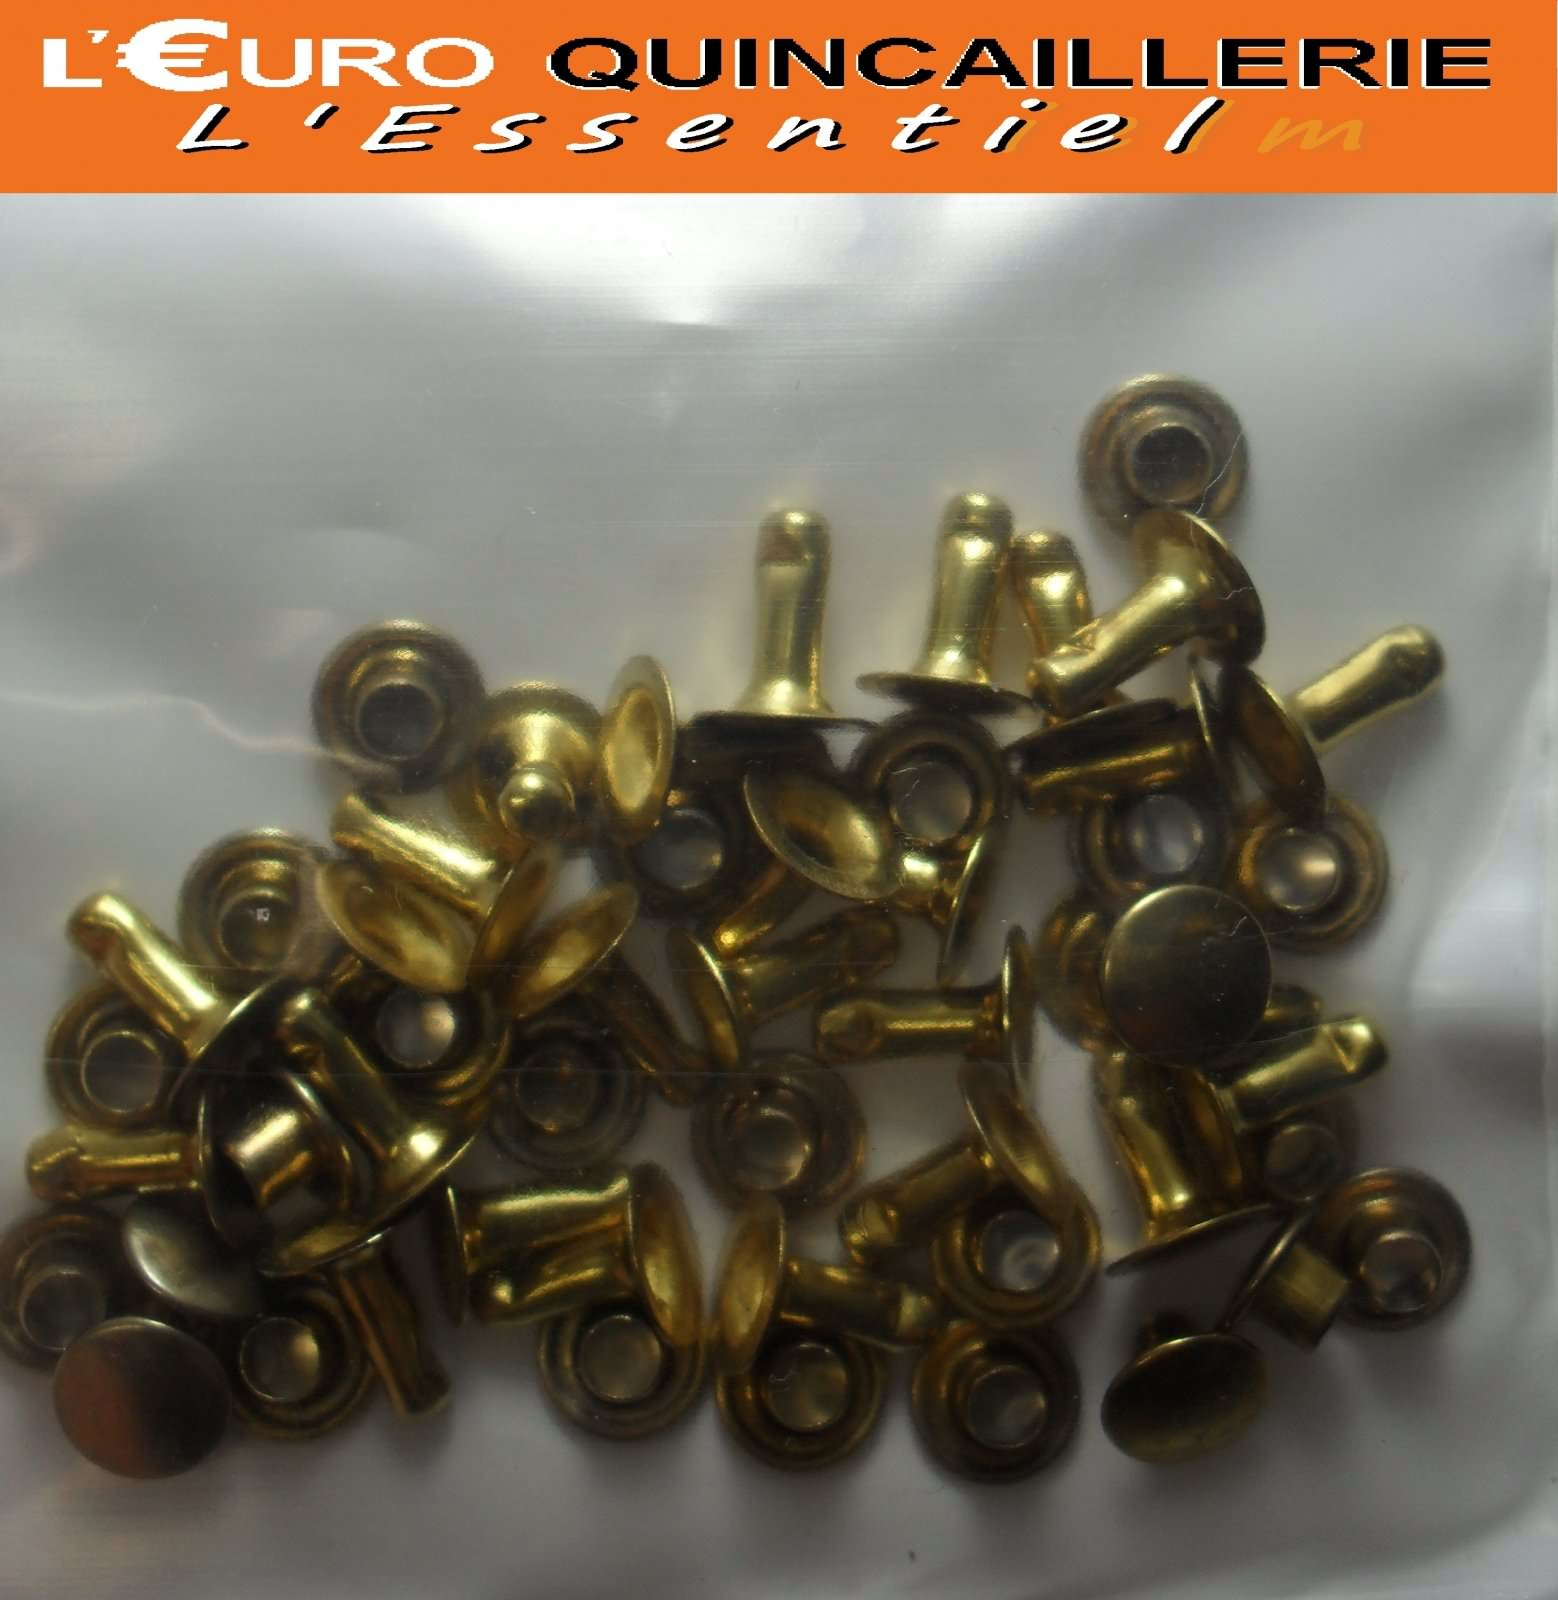 25 Rivets tubulaires D= 7mm  L= 9mm